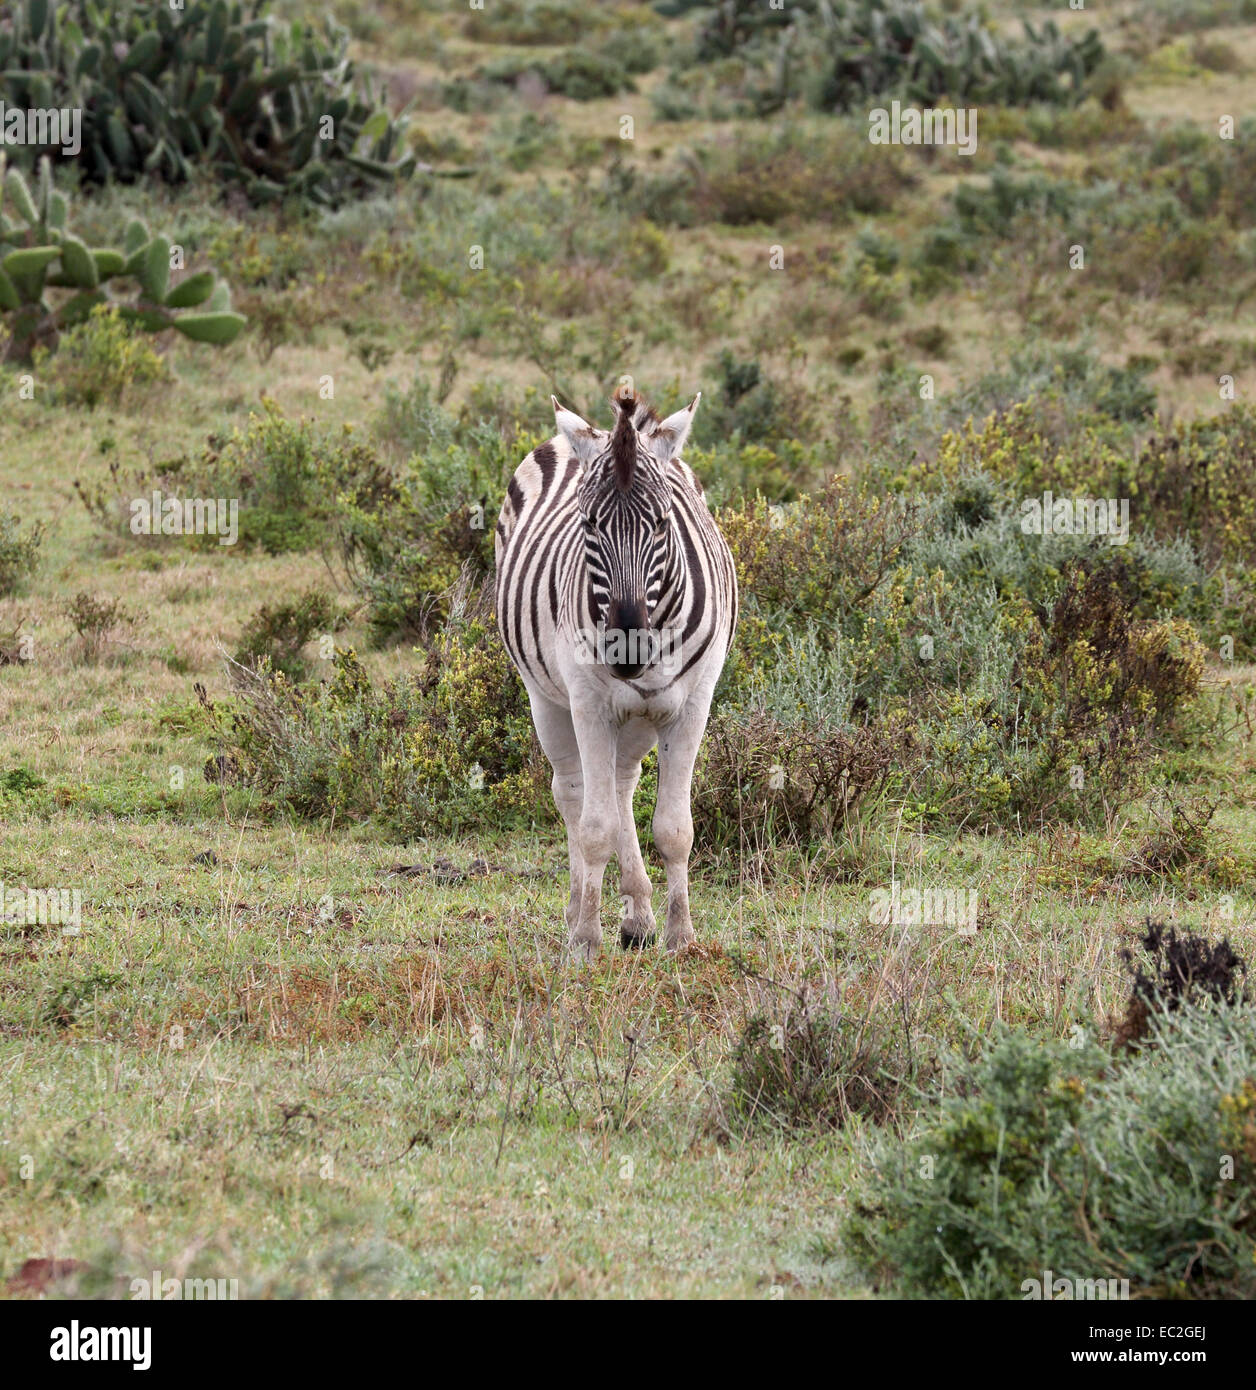 wild zebra at the kariega game reserve in south africa - Stock Image